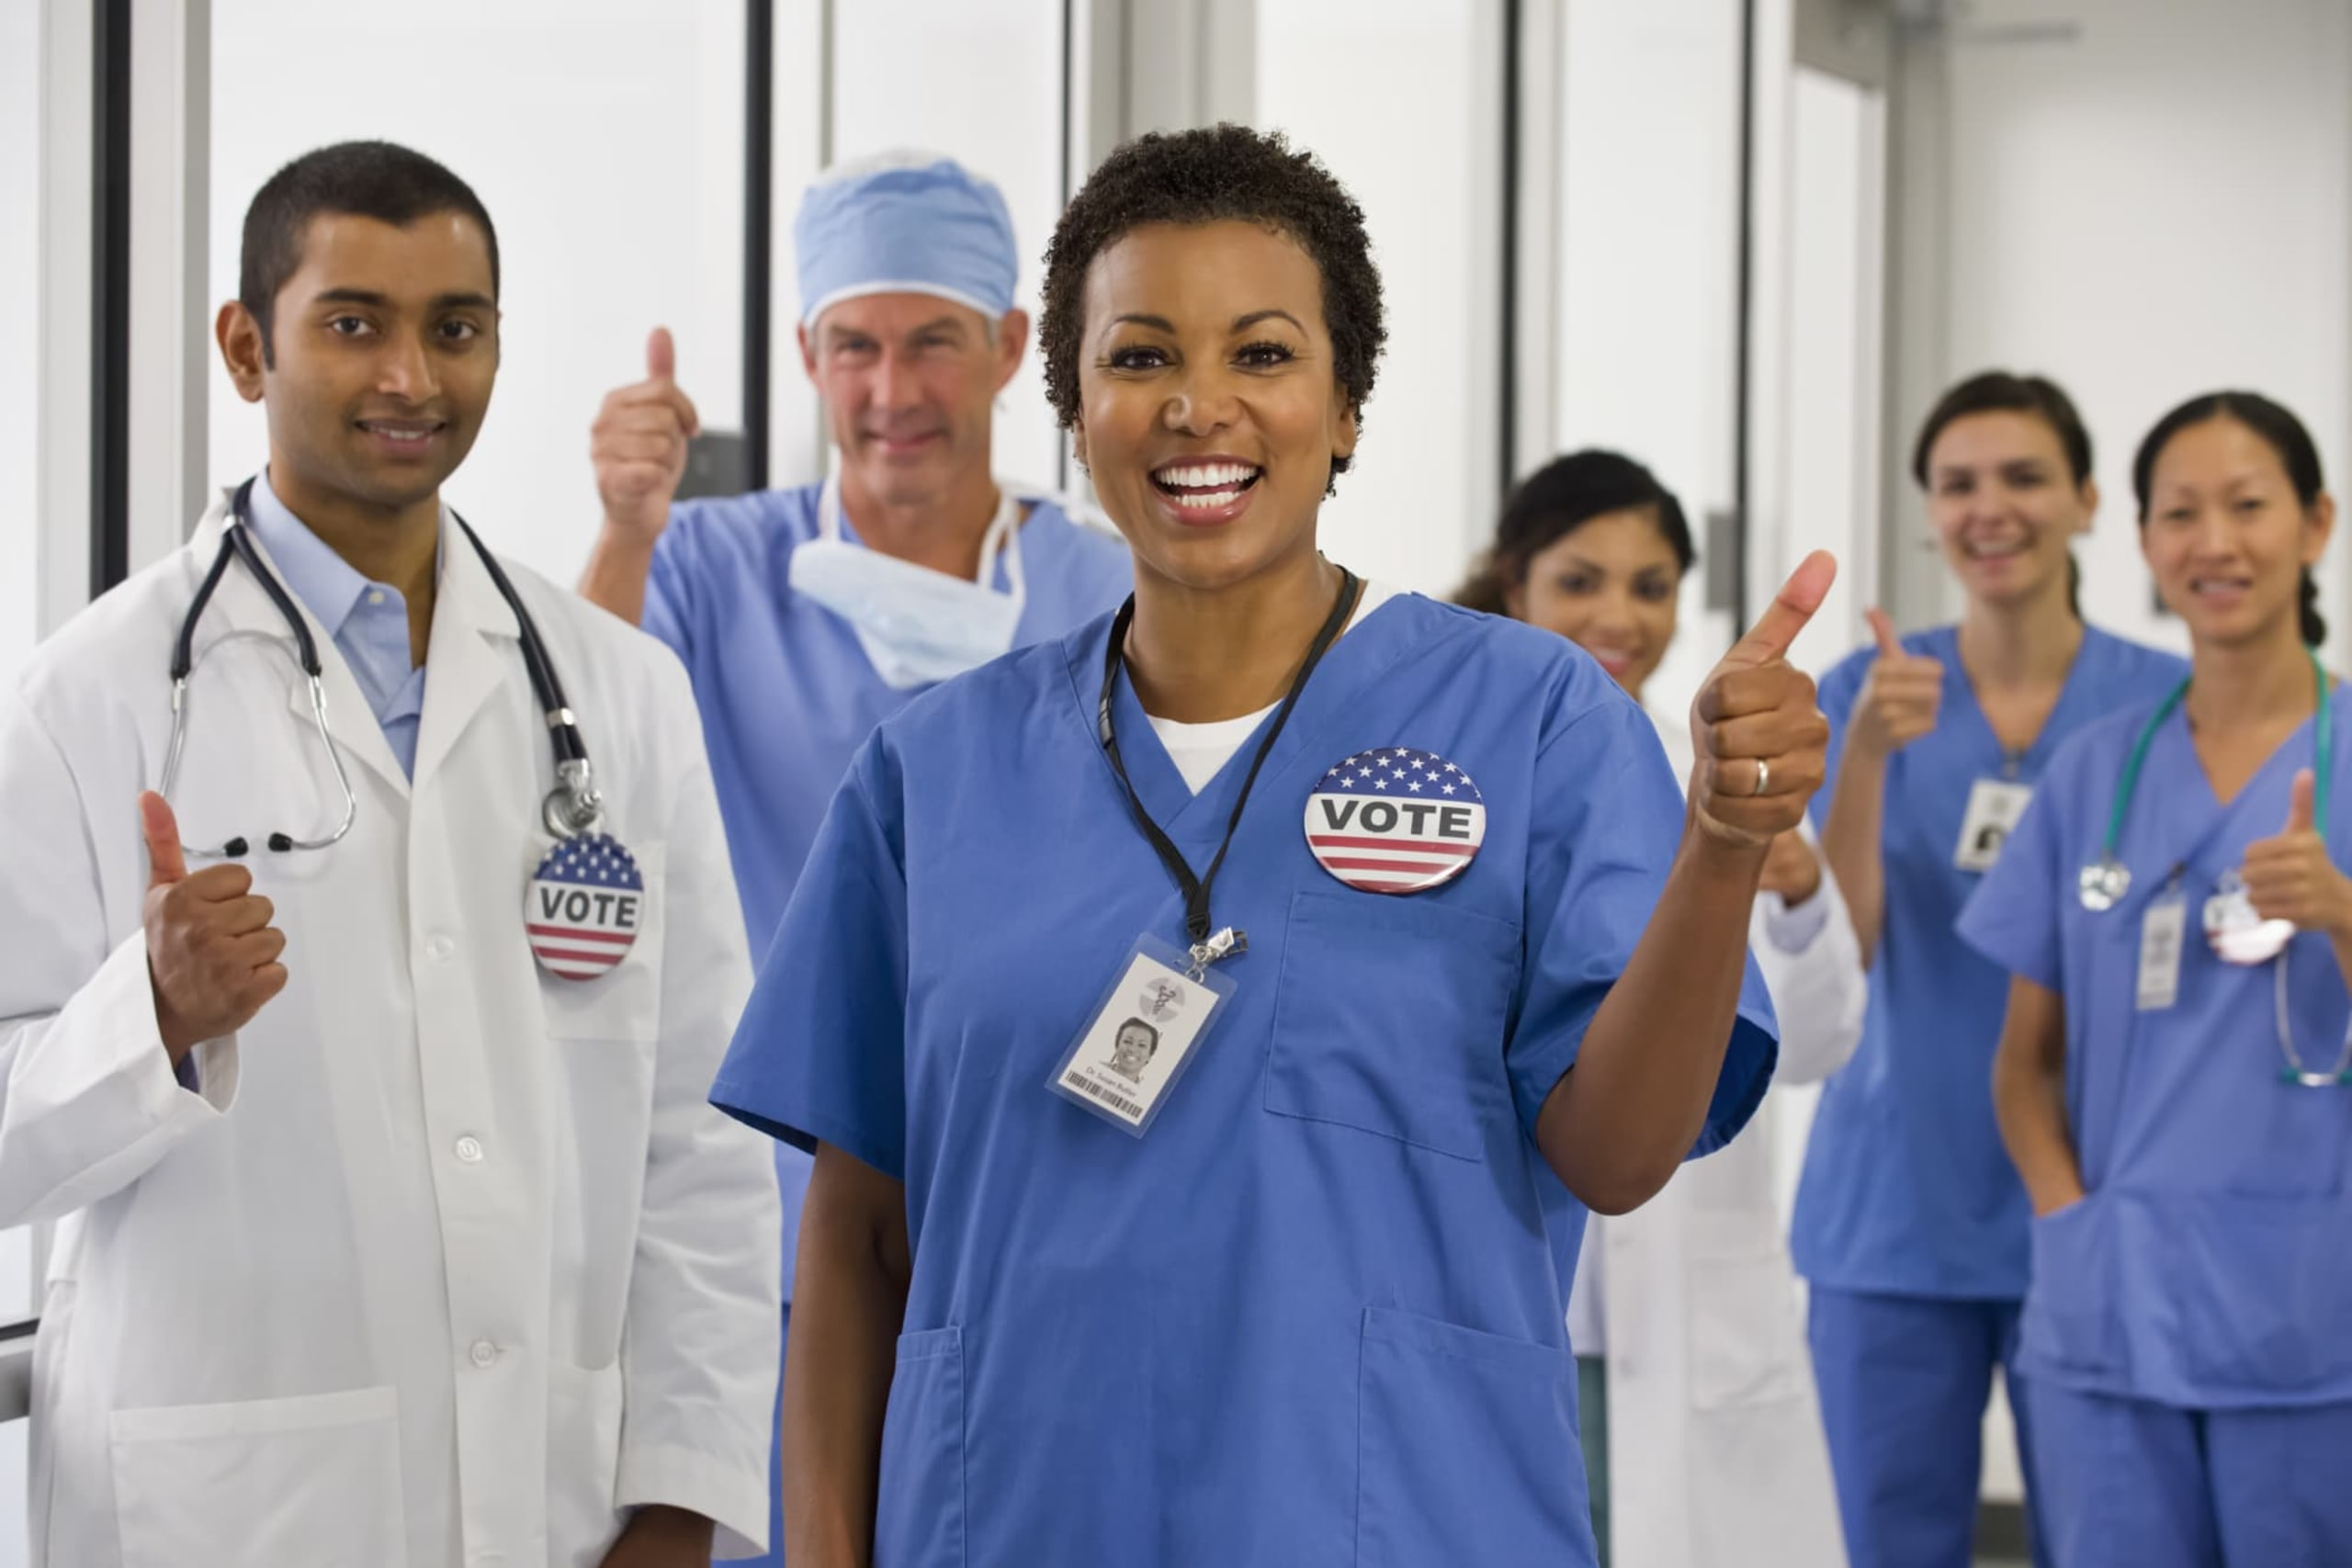 The Nurse's Guide to Voting